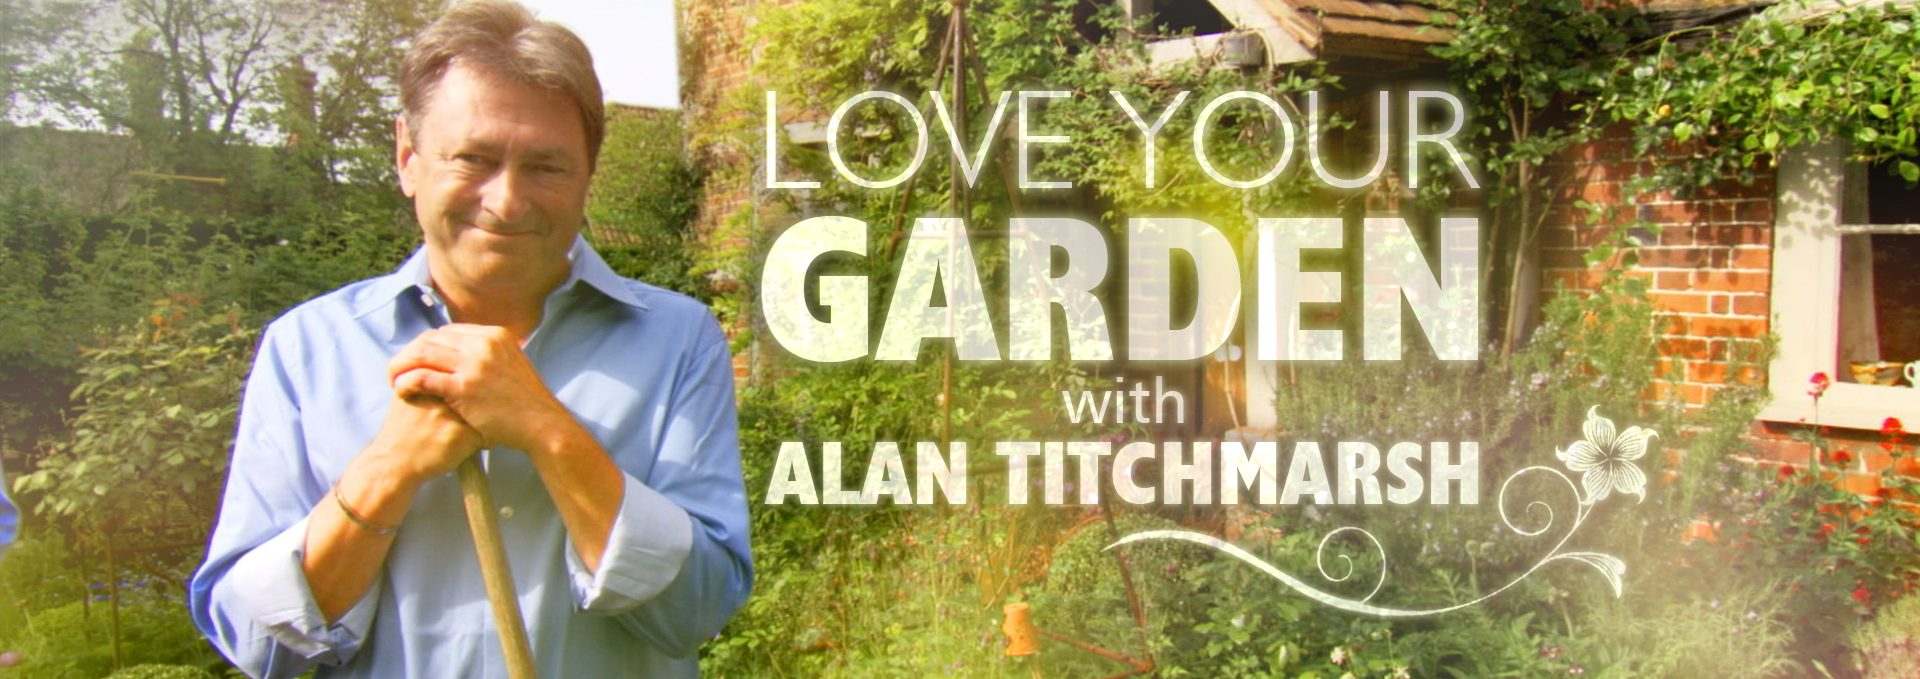 Terracotta Pot Company featured on Your Love Garden